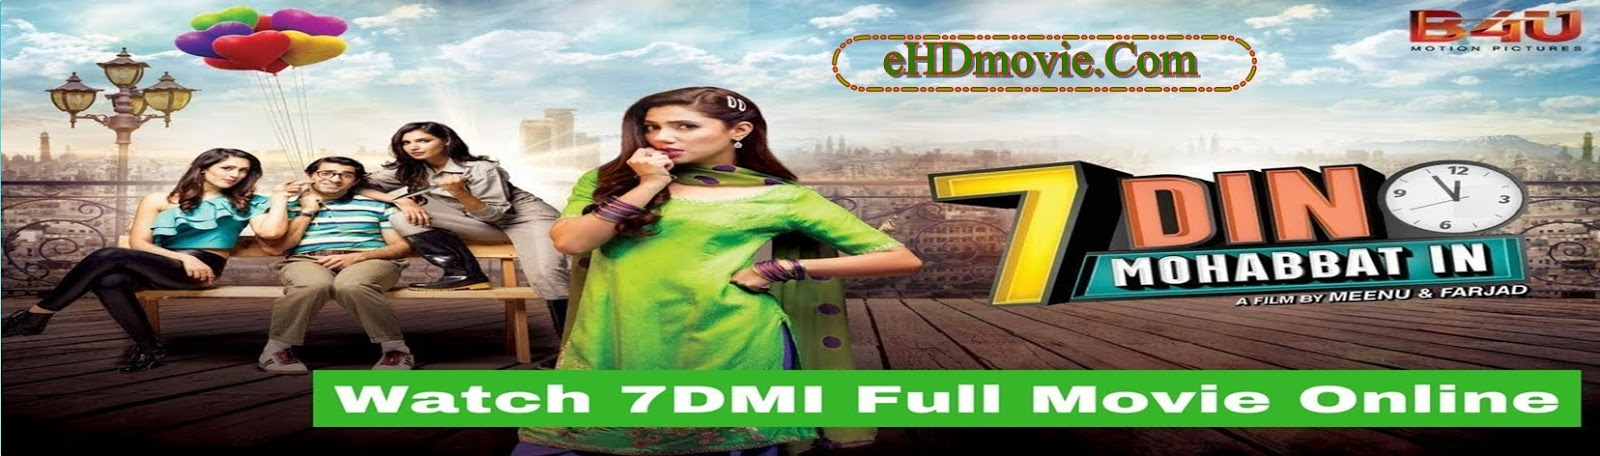 7 Din Mohabbat In 2018 Full Movie Urdu 720p - HEVC - 480p ORG HDRip 350MB - 550MB - 1GB ESubs Free Download